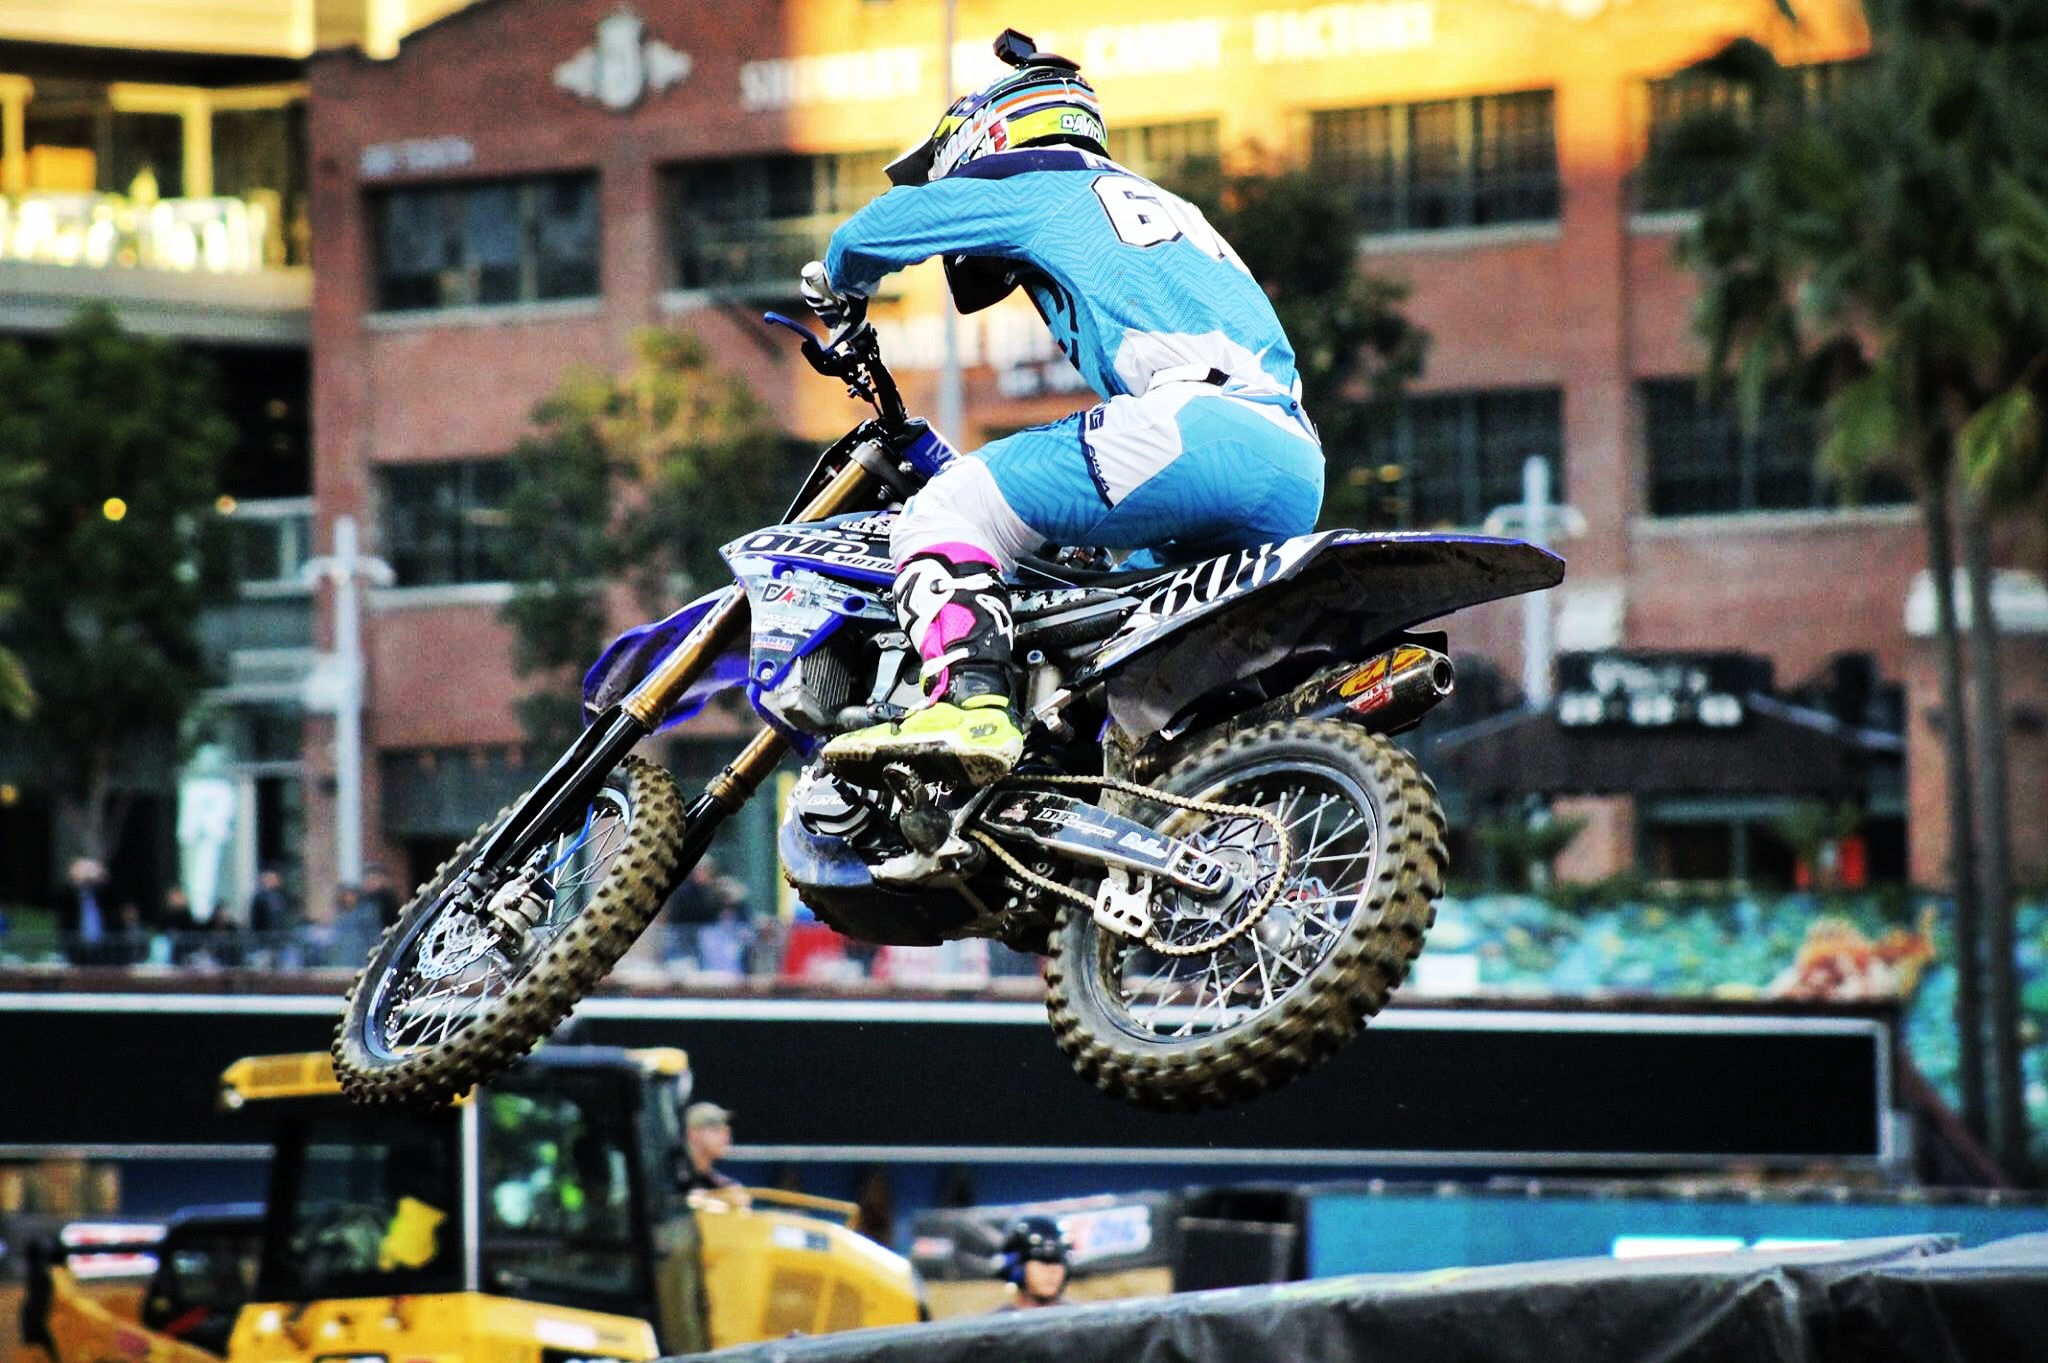 Look for Dave to put in some great results in the upcoming Monster Energy Supercross rounds